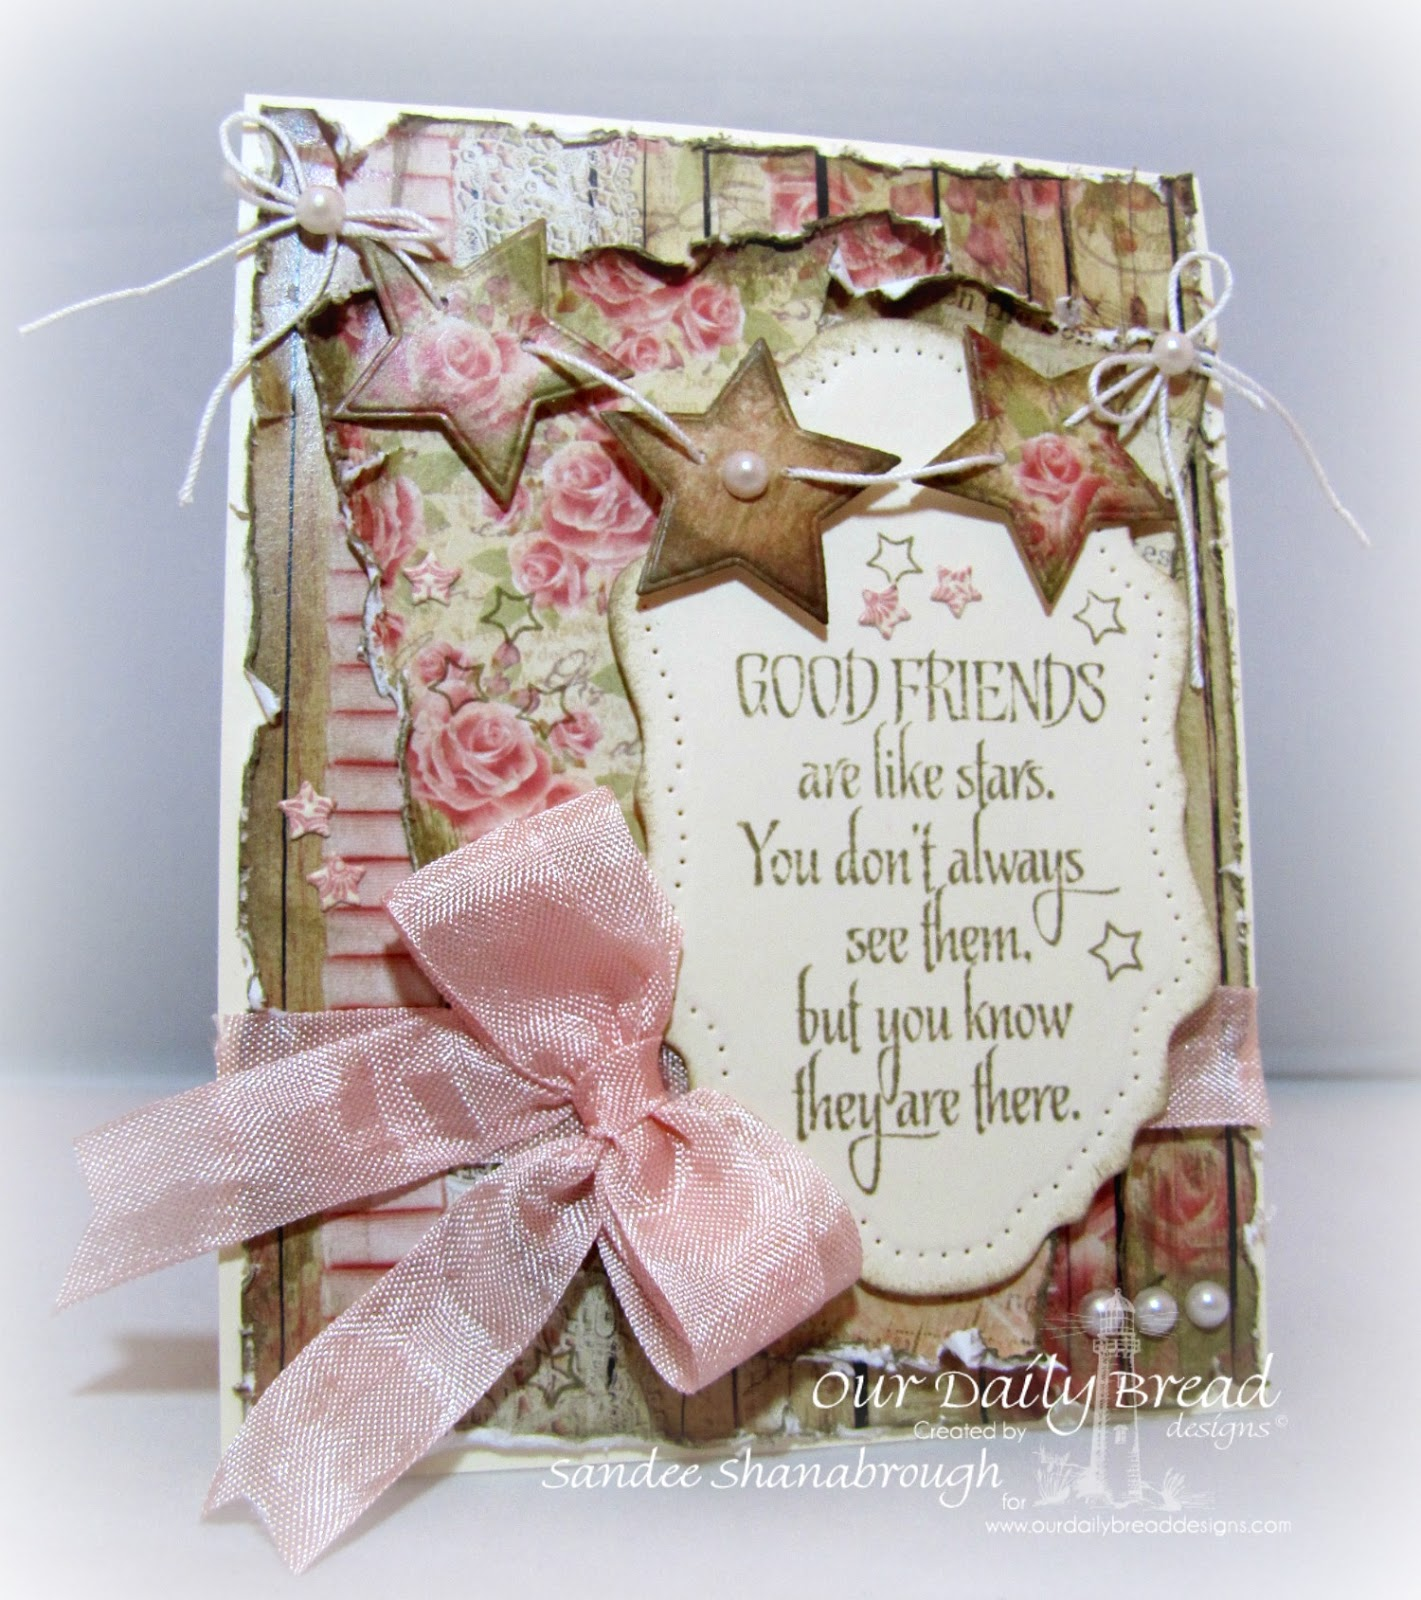 Stamps - Our Daily Bread Designs Reach for the Stars, His Birth, ODBD Custom Sparkling Stars Dies, ODBD Custom Vintage Flourish Pattern Die, ODBD Blushing Rose Paper Collection